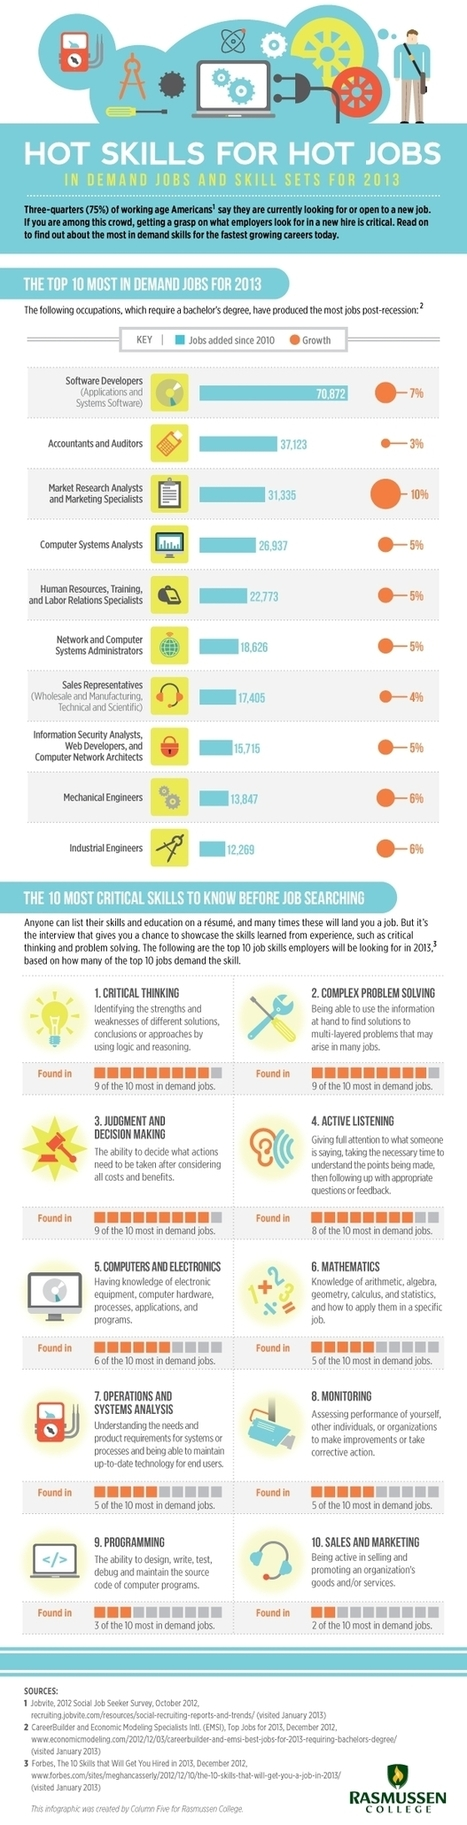 10 Most In-Demand Jobs and Skill Sets for 2013 and Beyond | Critical Thinking | Scoop.it